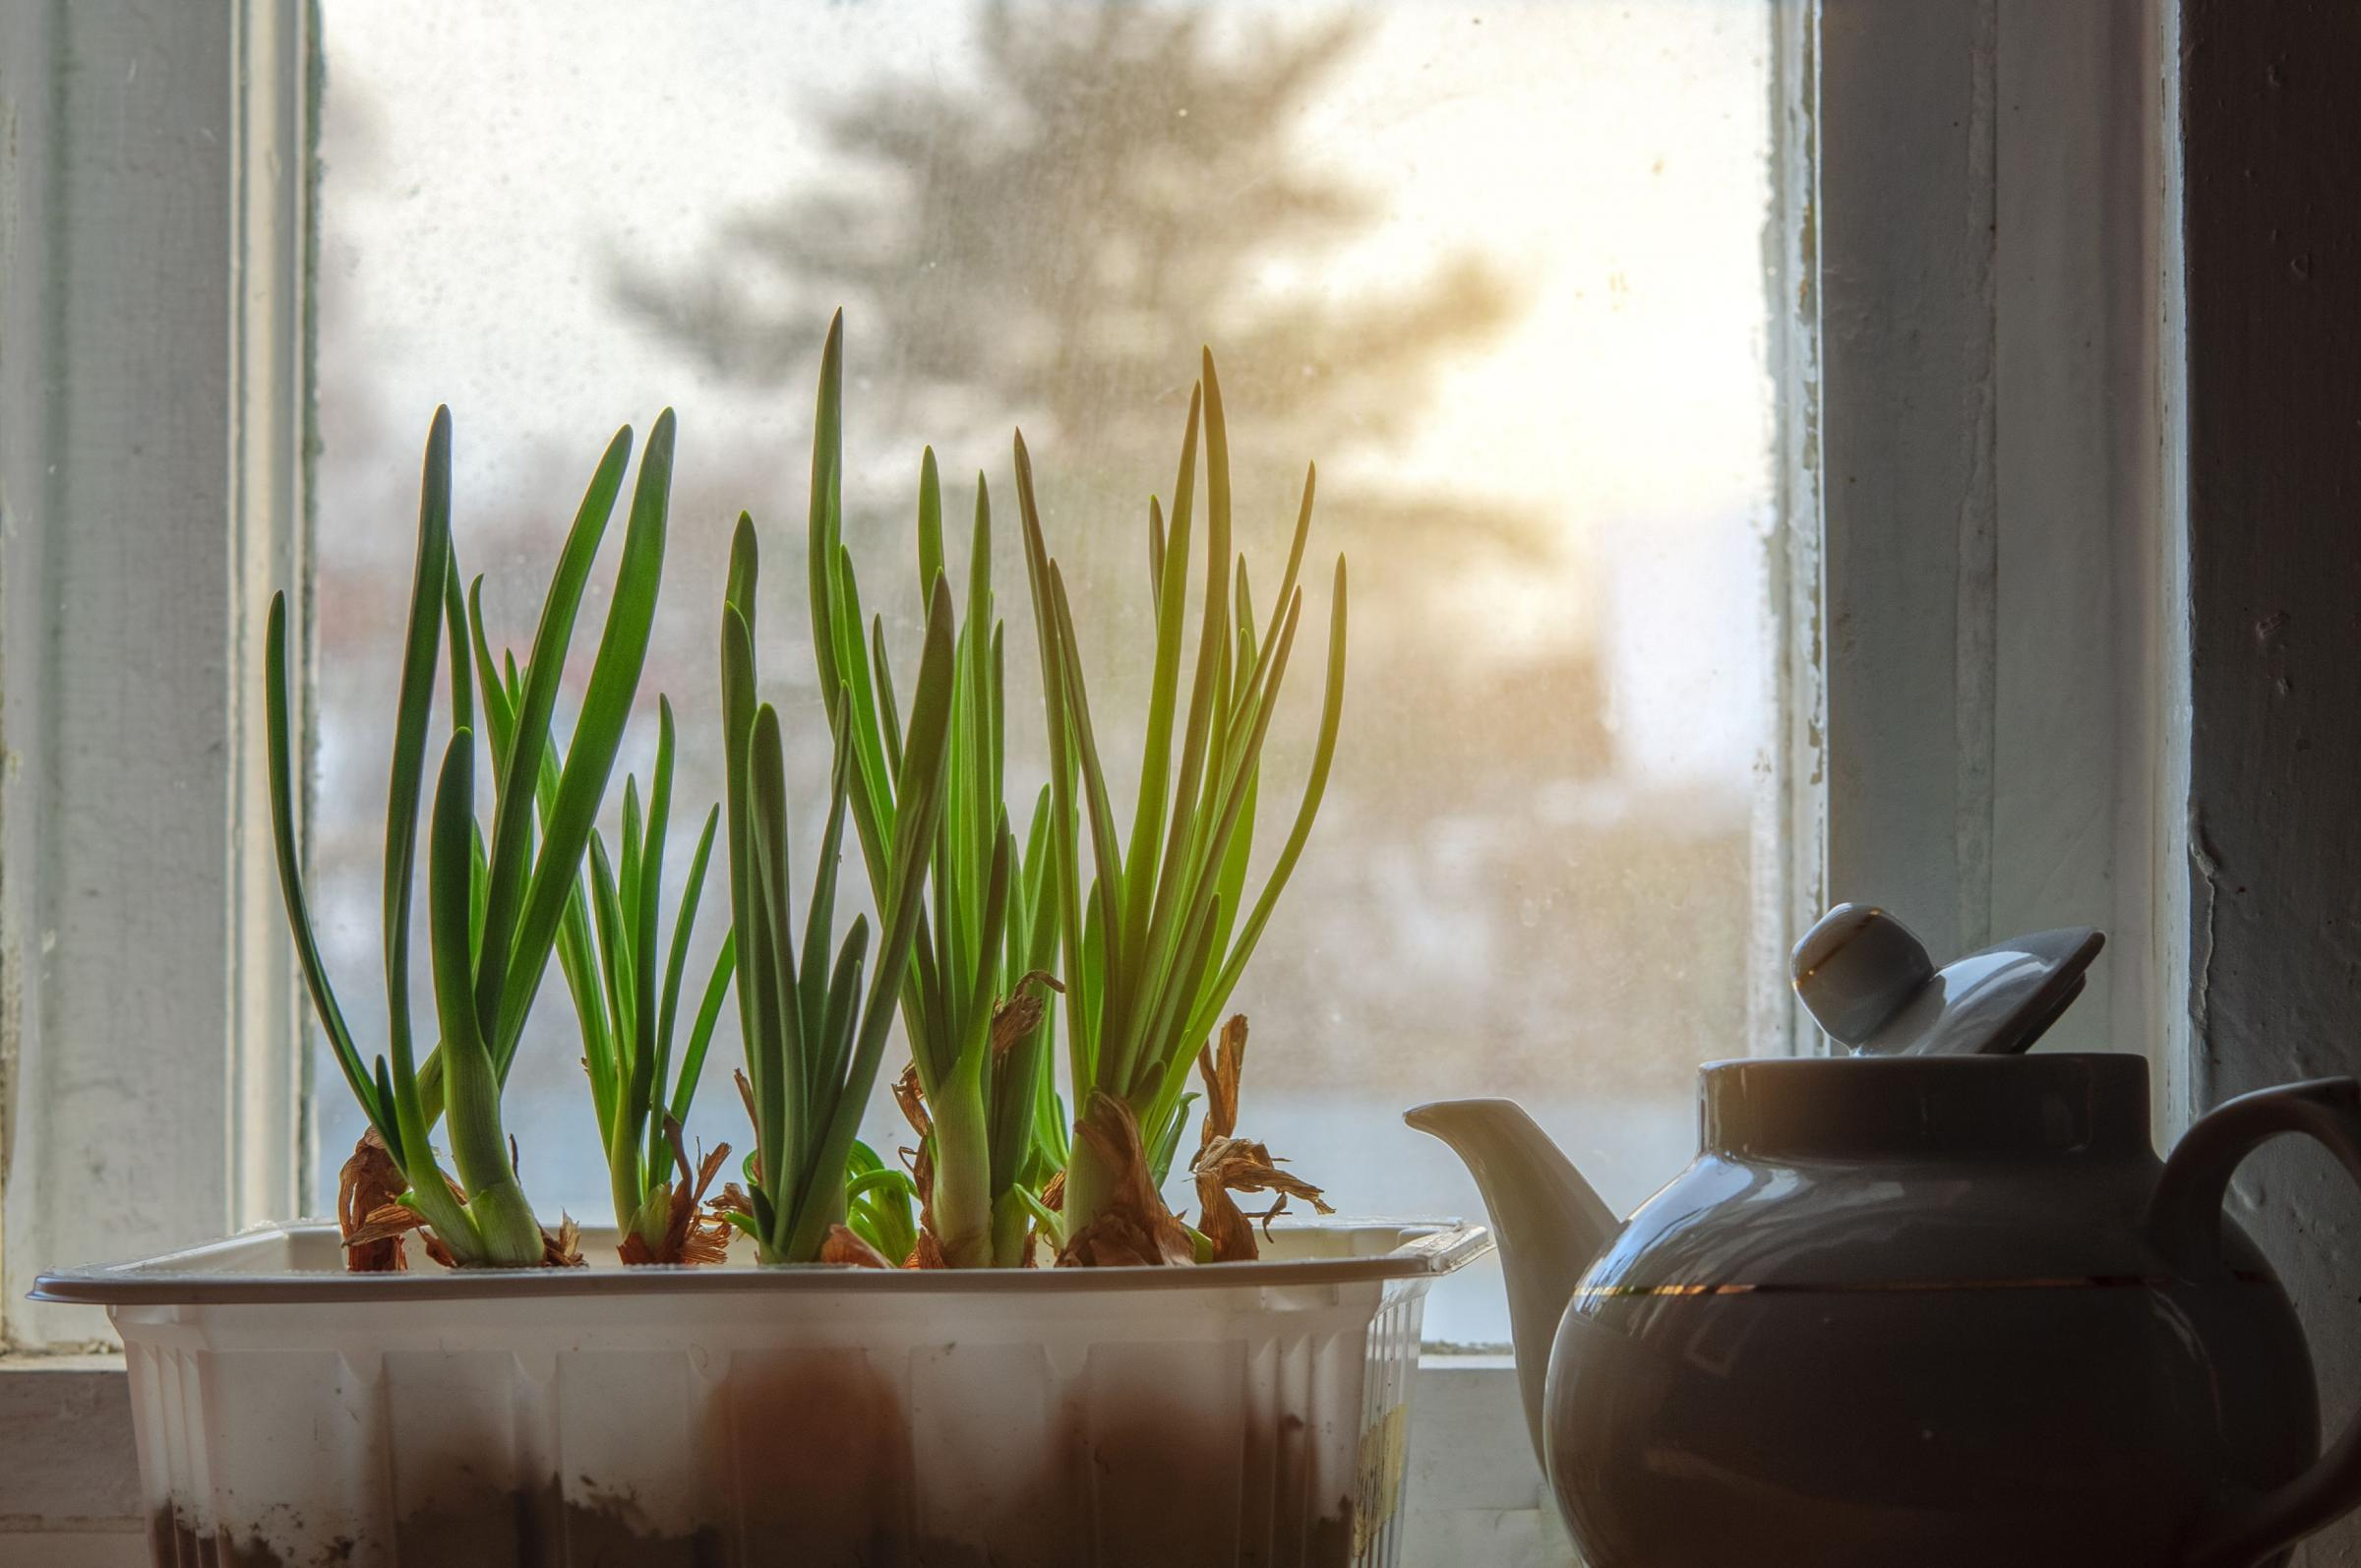 How to grow microgreens and other crops on your windowsill